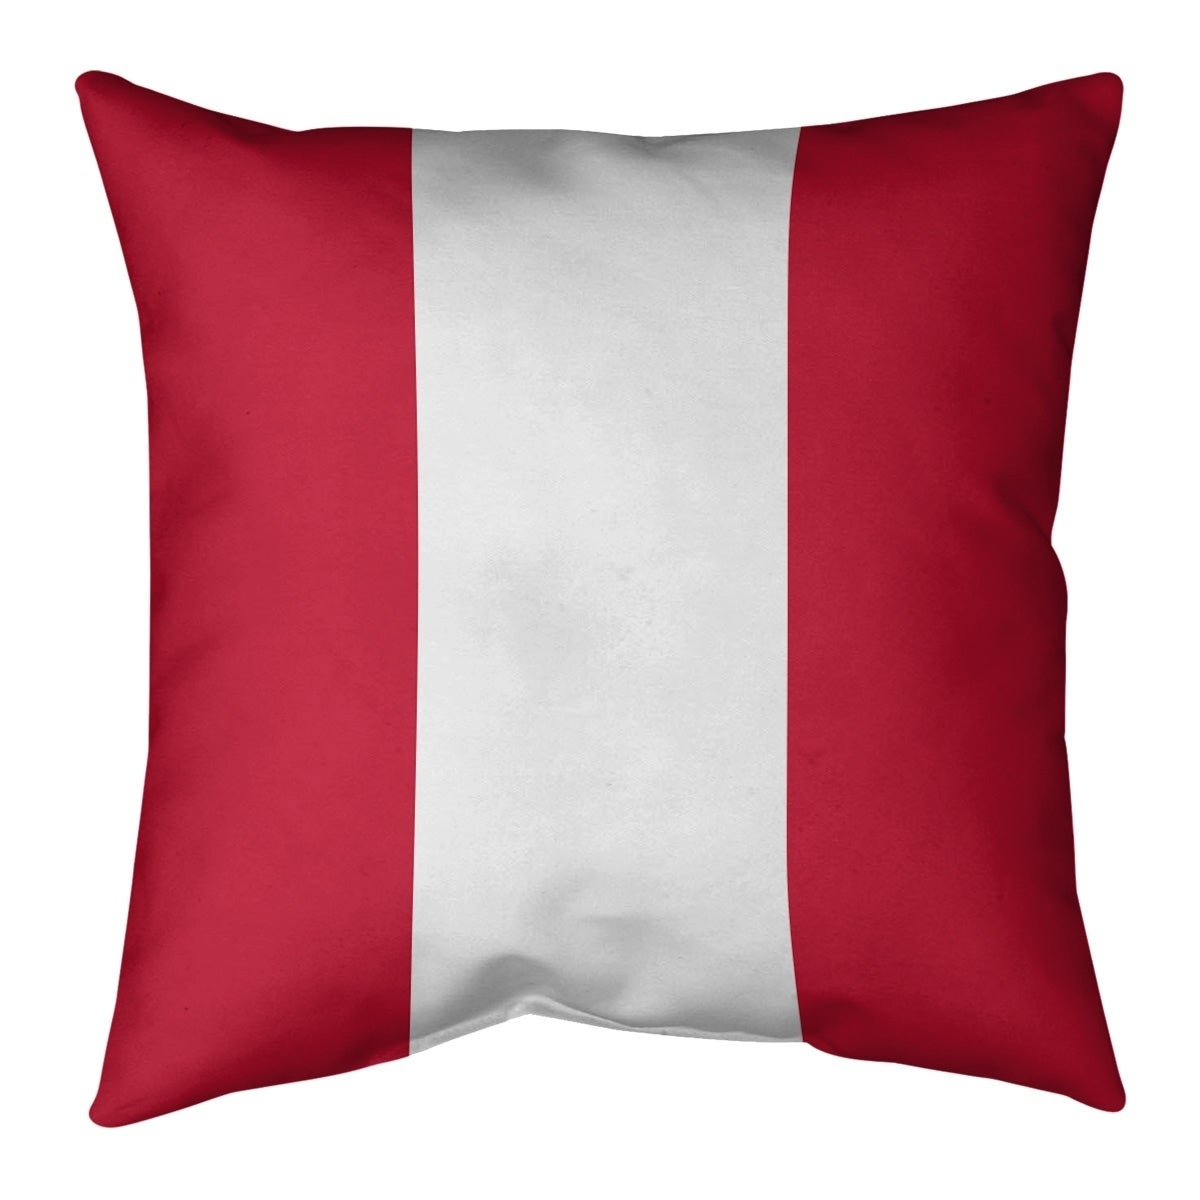 Houston Houston Throwback Football Stripes Floor Pillow Standard Overstock 30283488